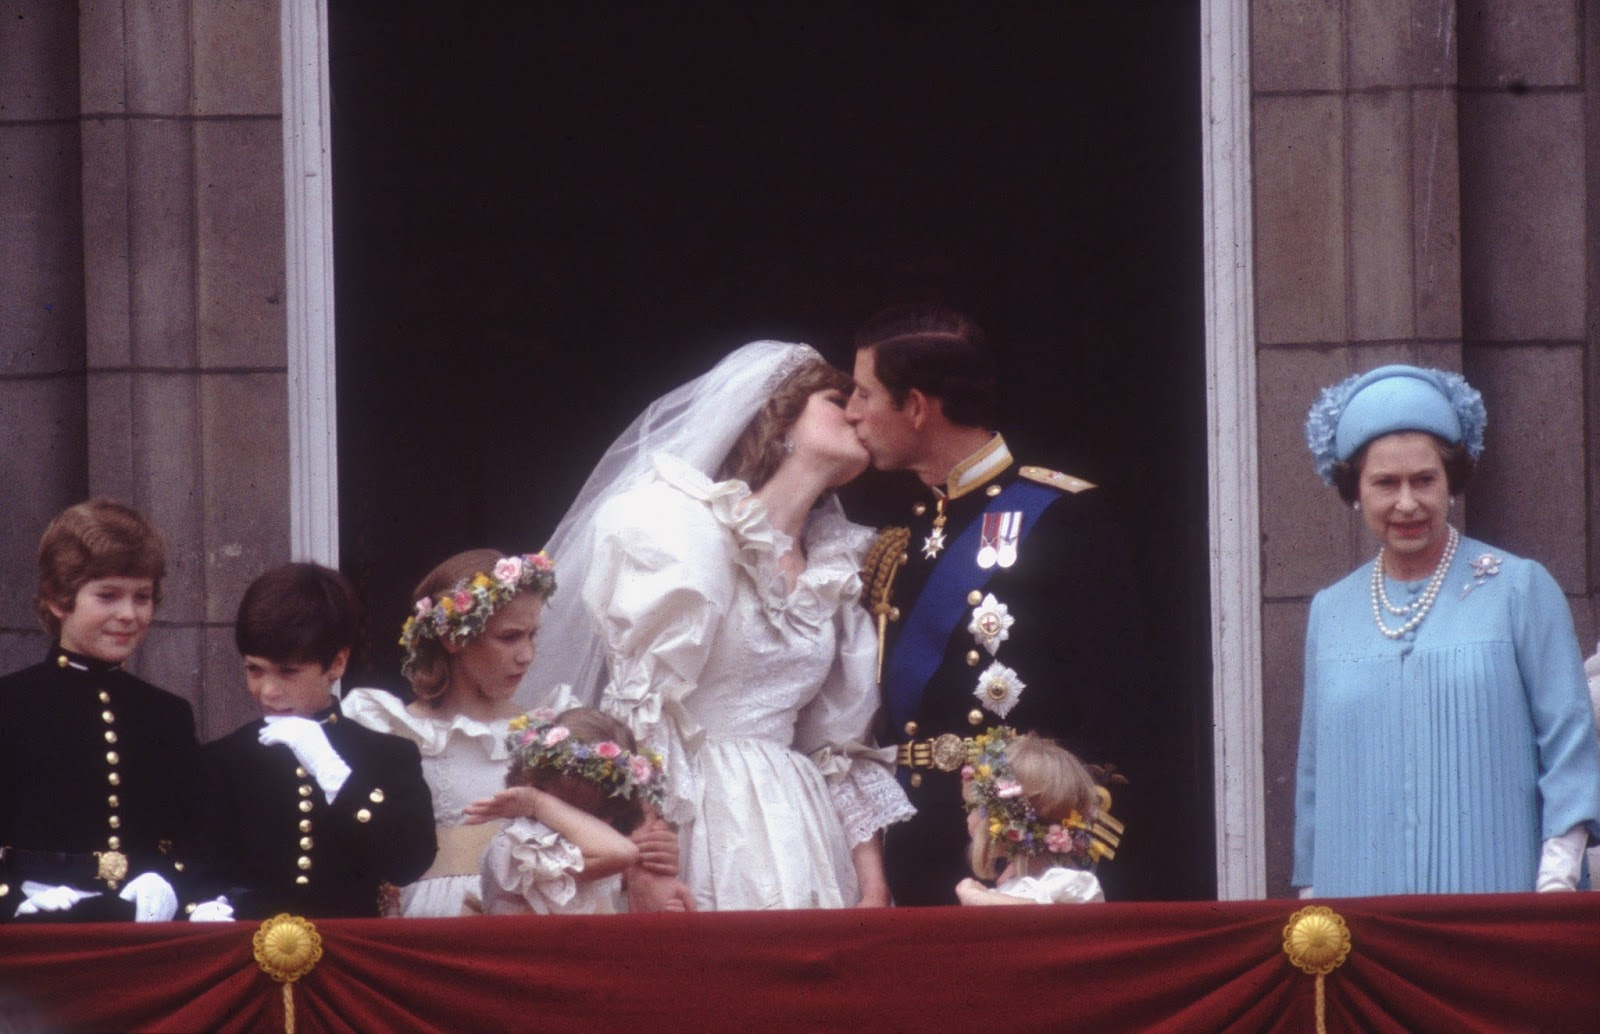 Diana And Charles Wedding.Queens Of England Royal Wedding Album Charles And Diana